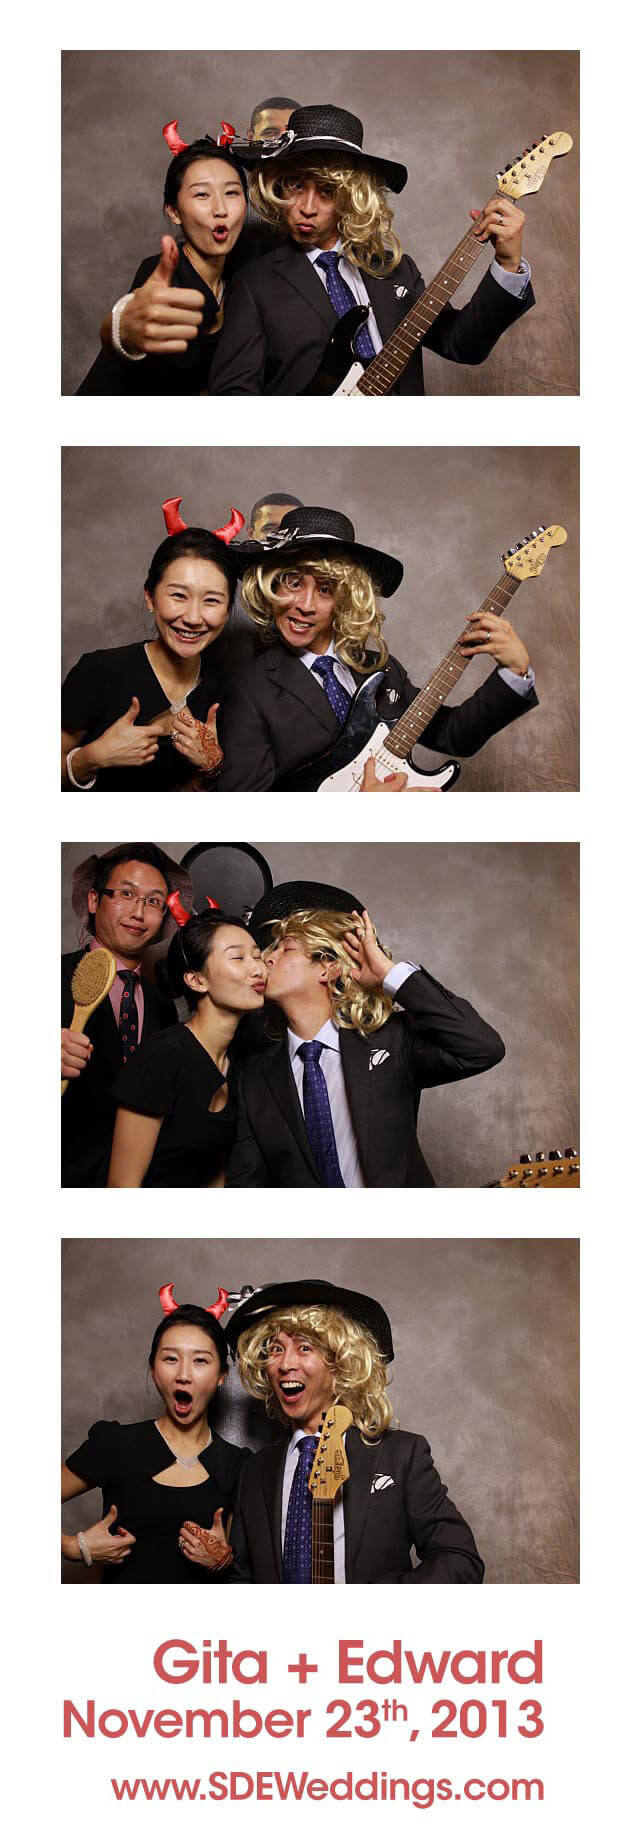 Gita Edward Toronto Party Photobooth Rental Photos